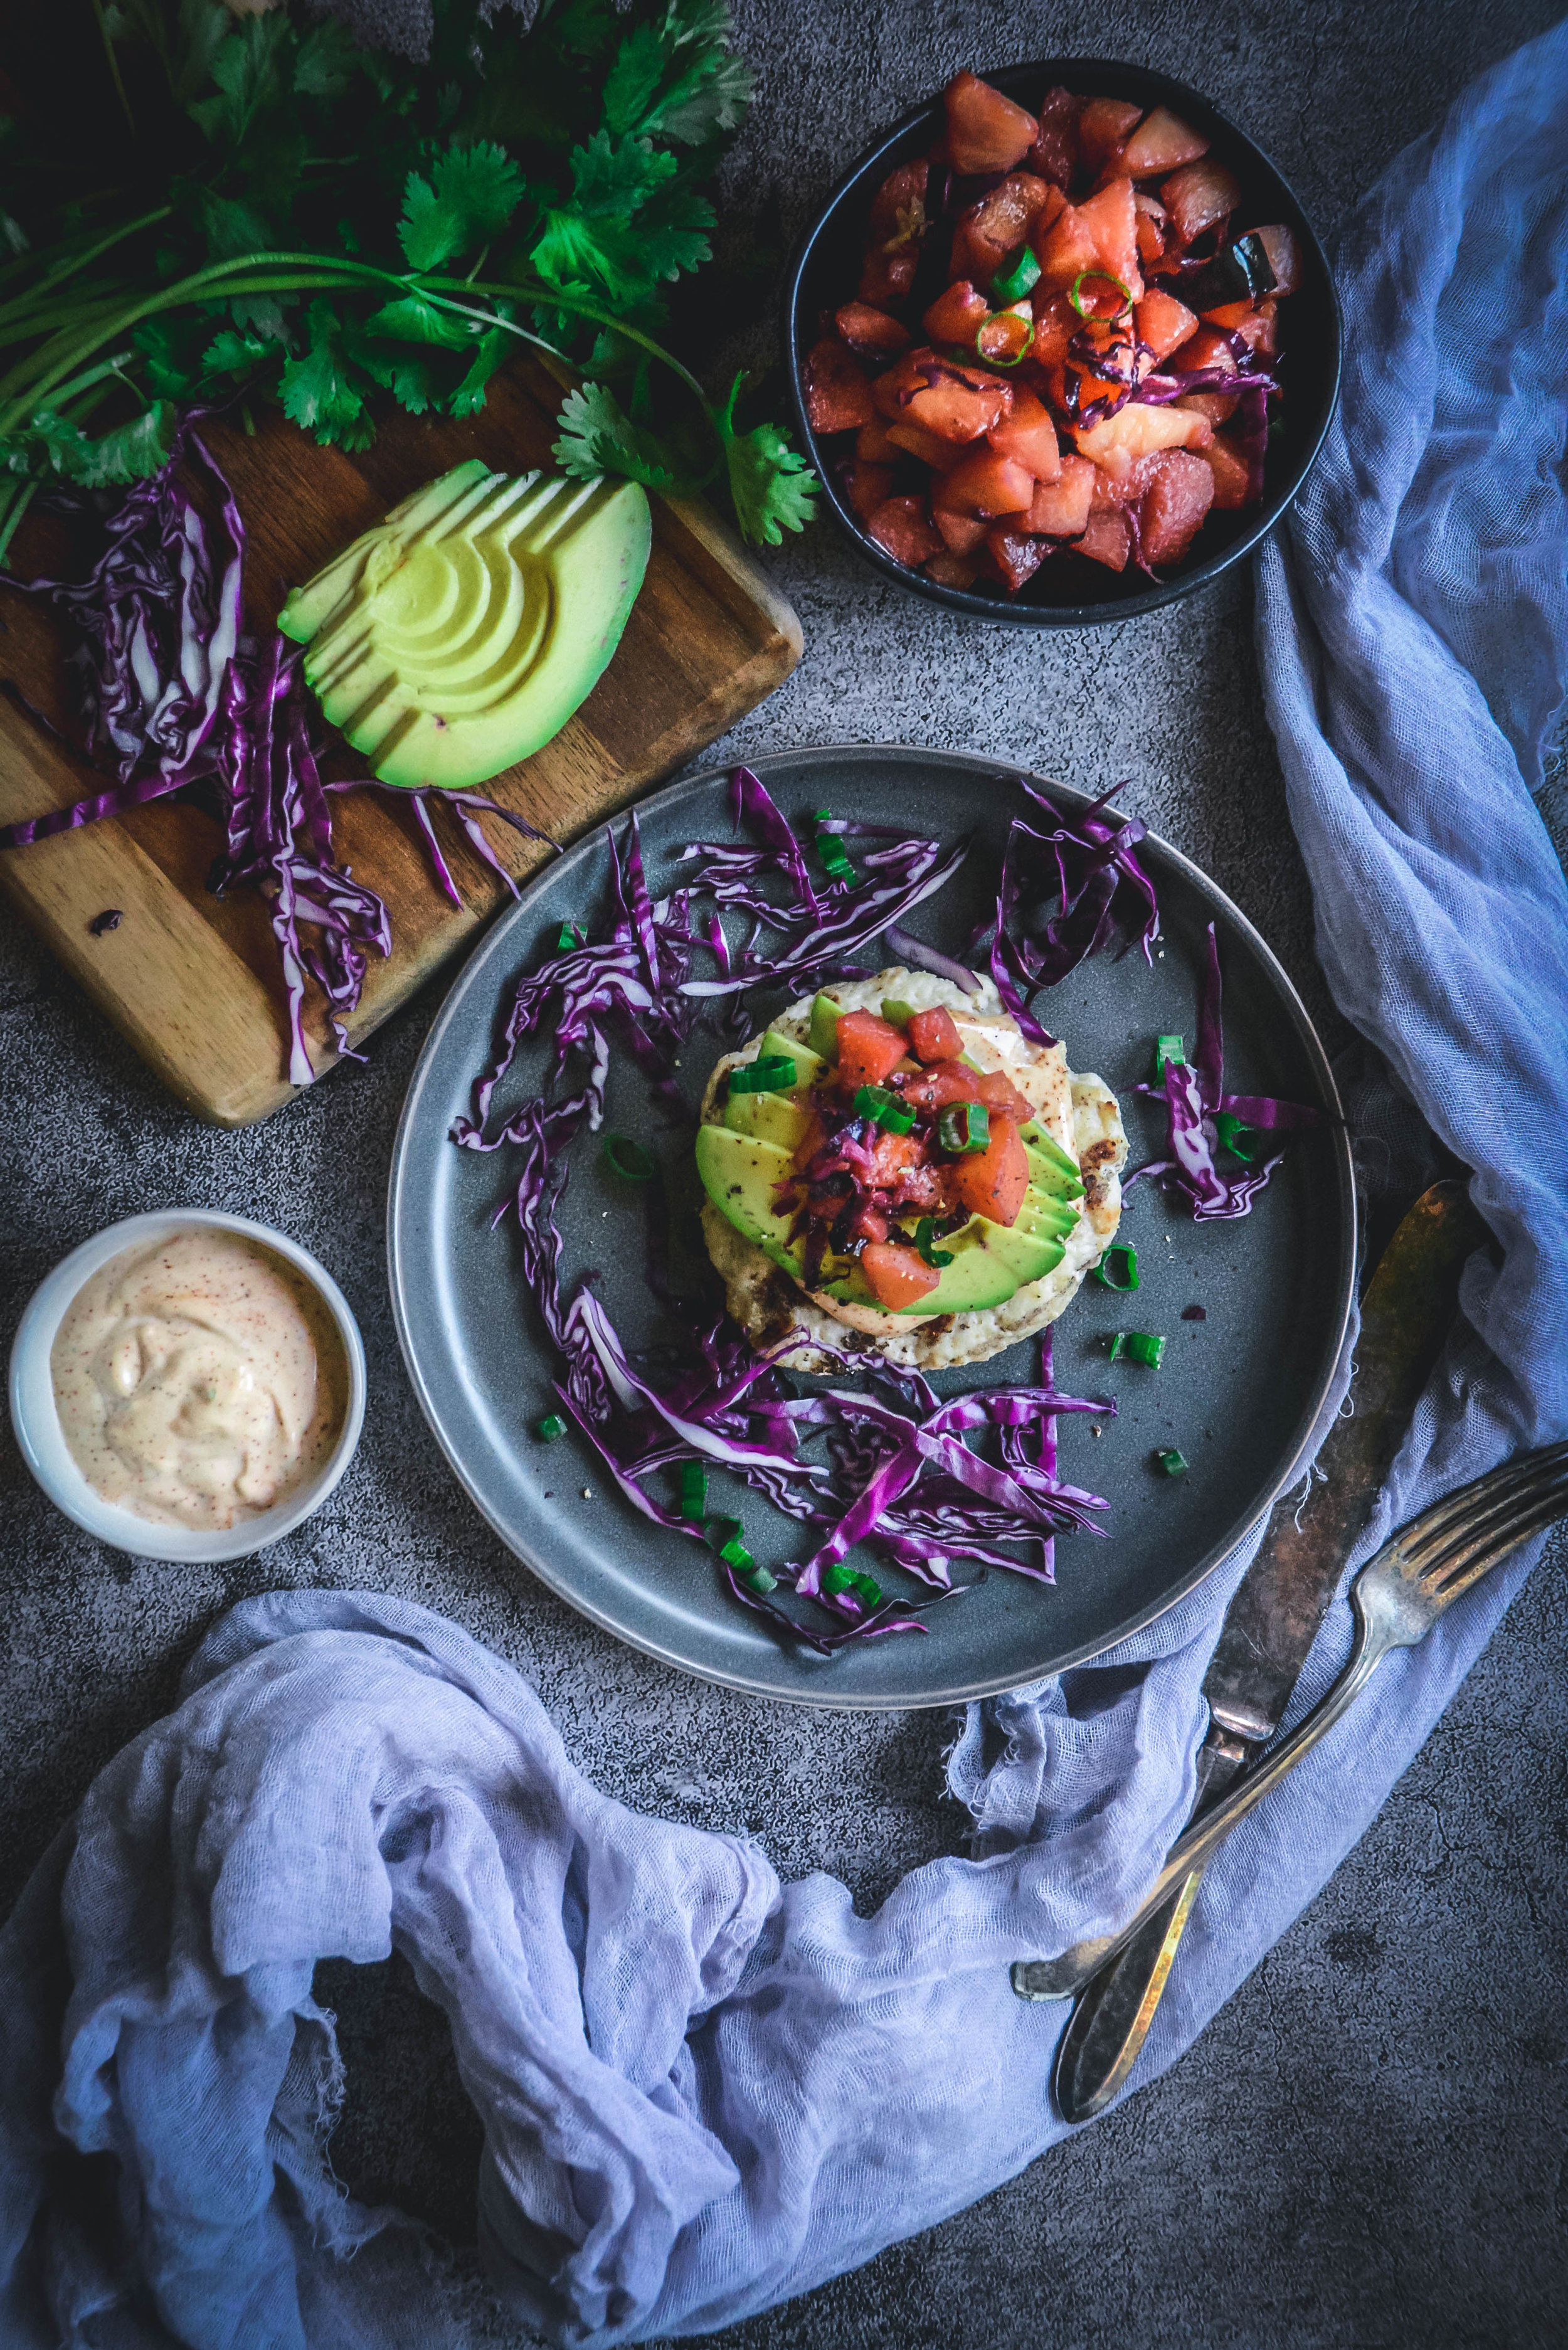 Turkey burgers with peach chutney and avocado, spicy mayo, a bowl of peach chutney, avocado slices, red cabbage, cutting board, napkin and fork and knife